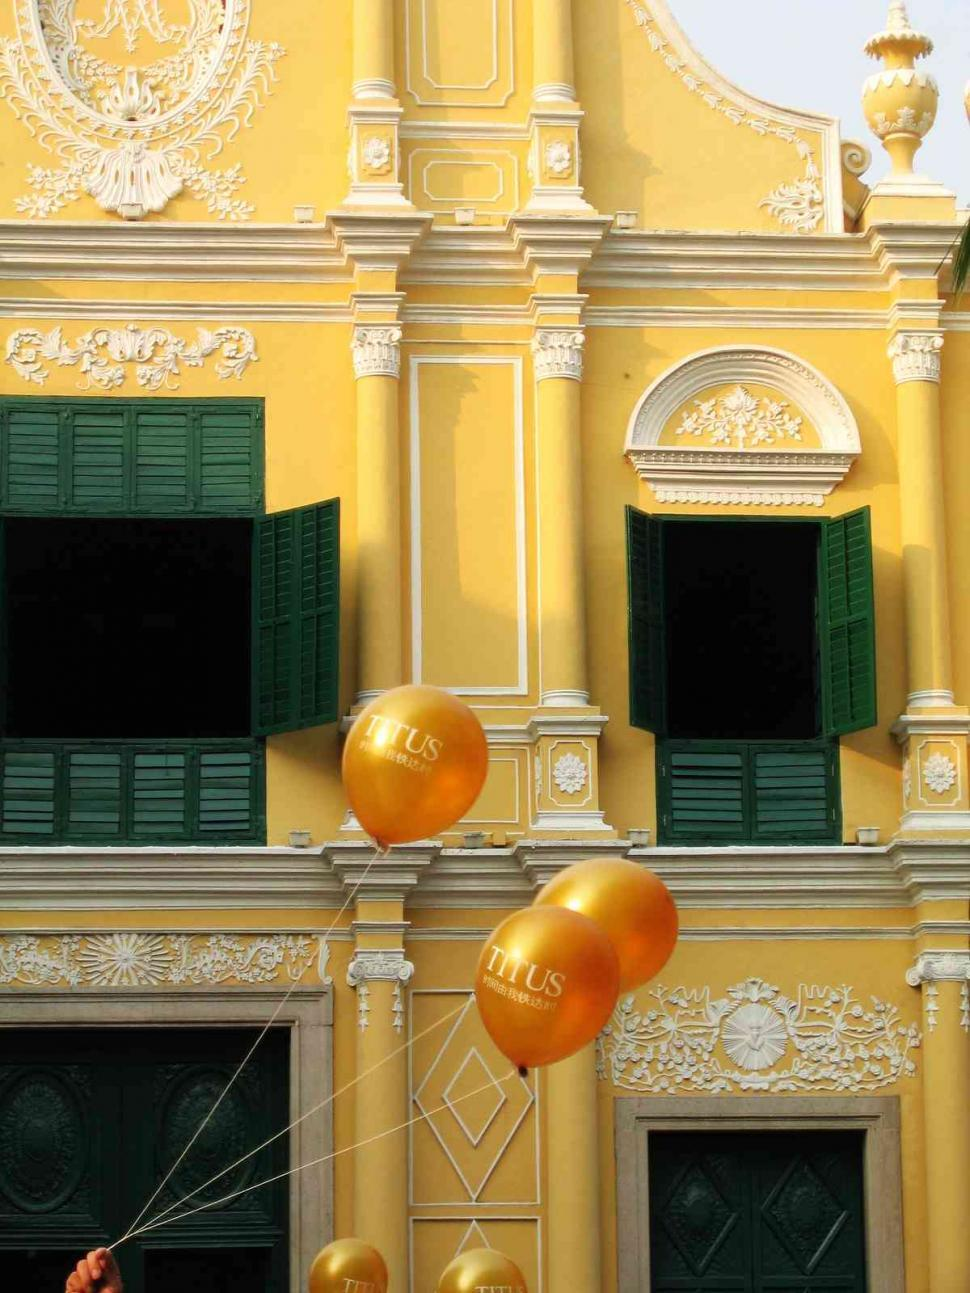 Download Free Stock HD Photo of Balloon over church Online